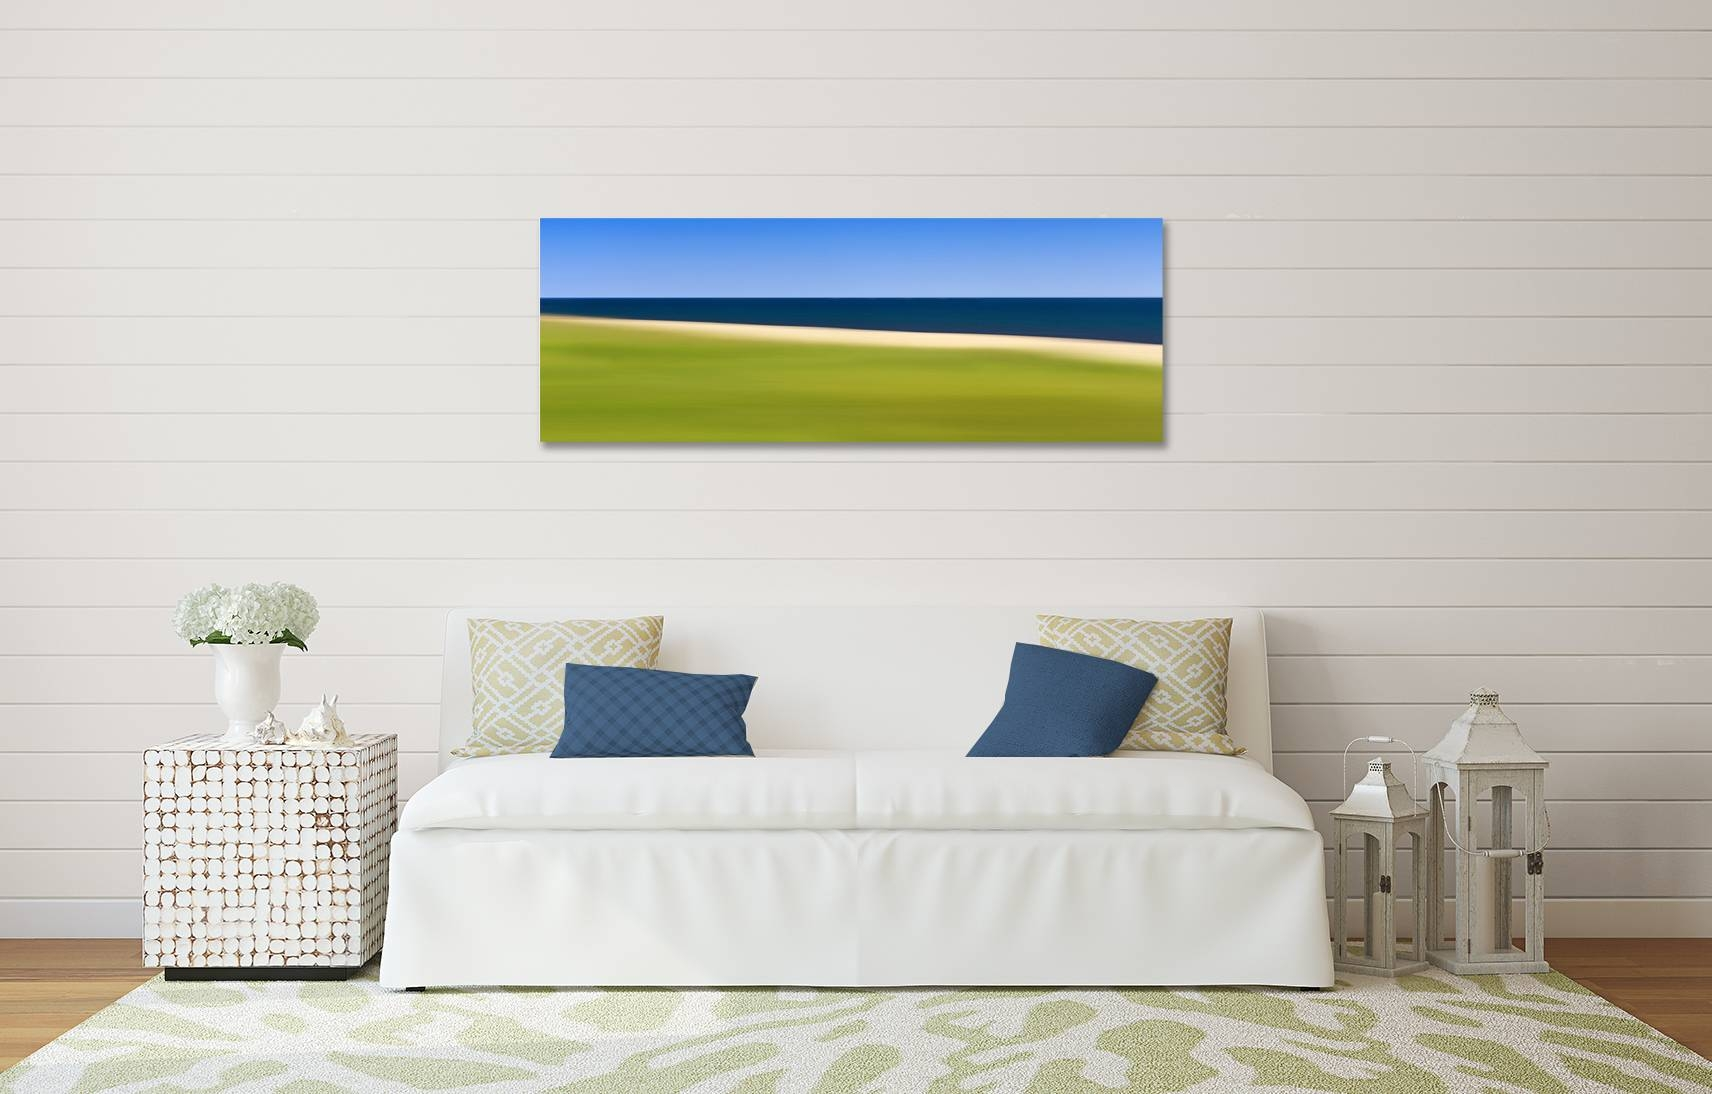 Fine Art Prints For Sale   Abstract Art, Large Canvas Wall Art Pertaining To Recent Coastal Wall Art Canvas (View 14 of 20)